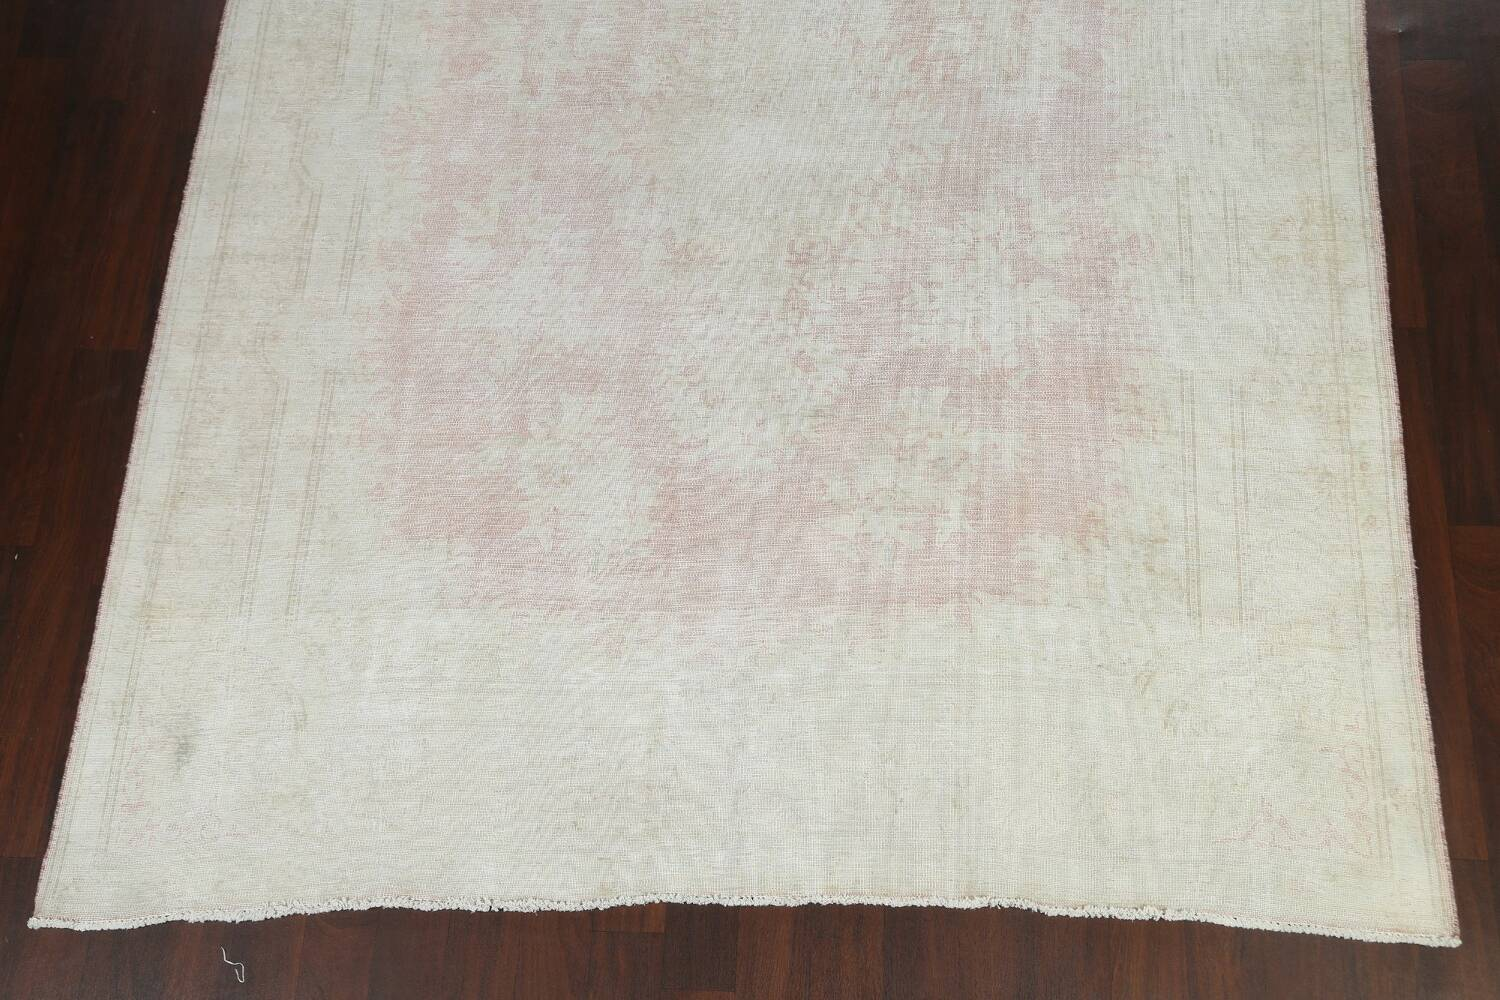 Antique Muted Distressed Kerman Persian Area Rug 8x11 image 5